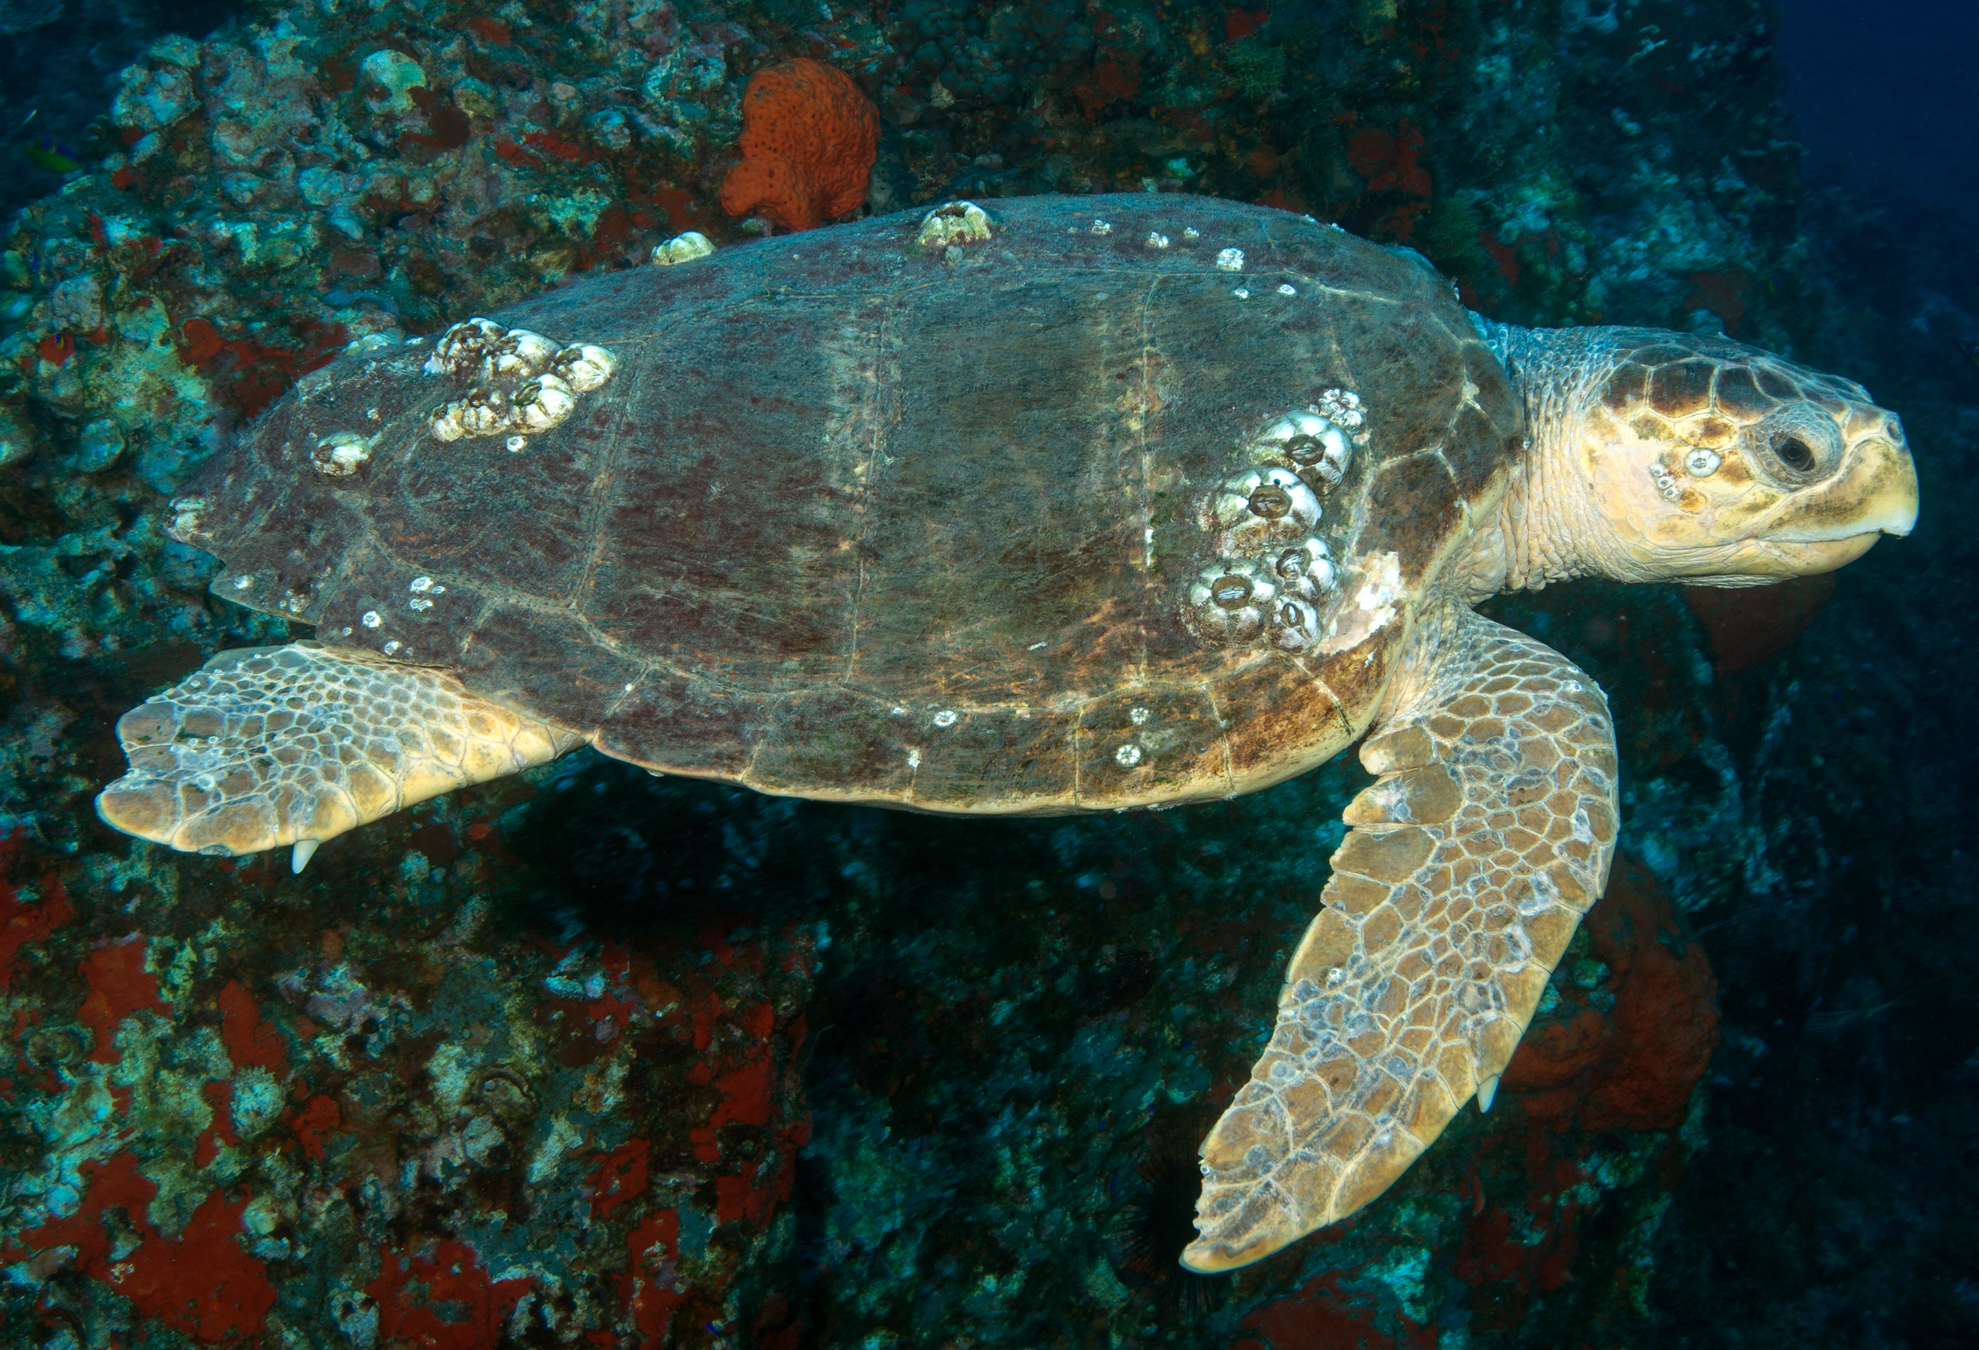 Loggerhead turtle with rocky reef behind it.